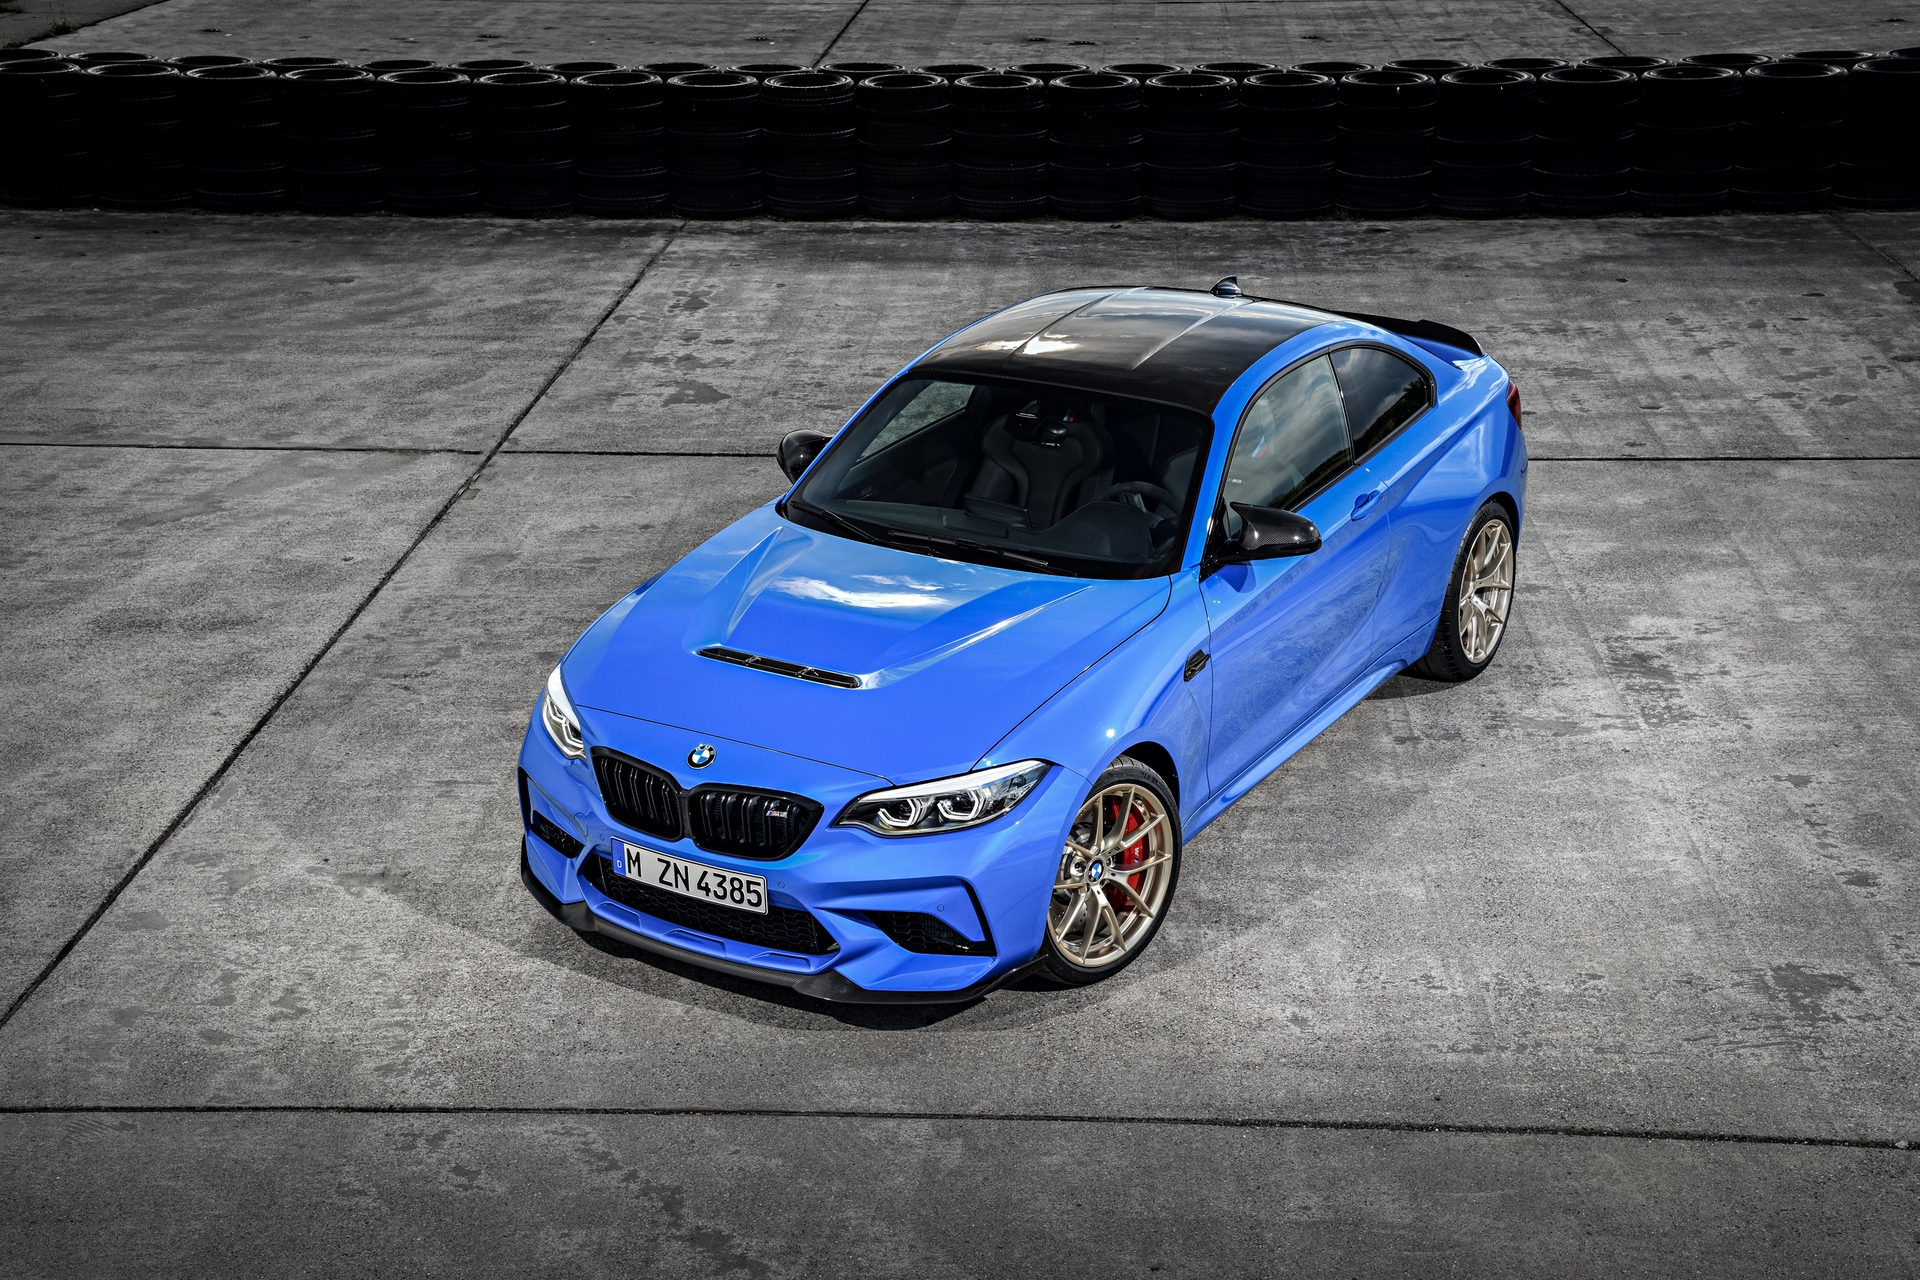 BMW M2 CS photos images 42